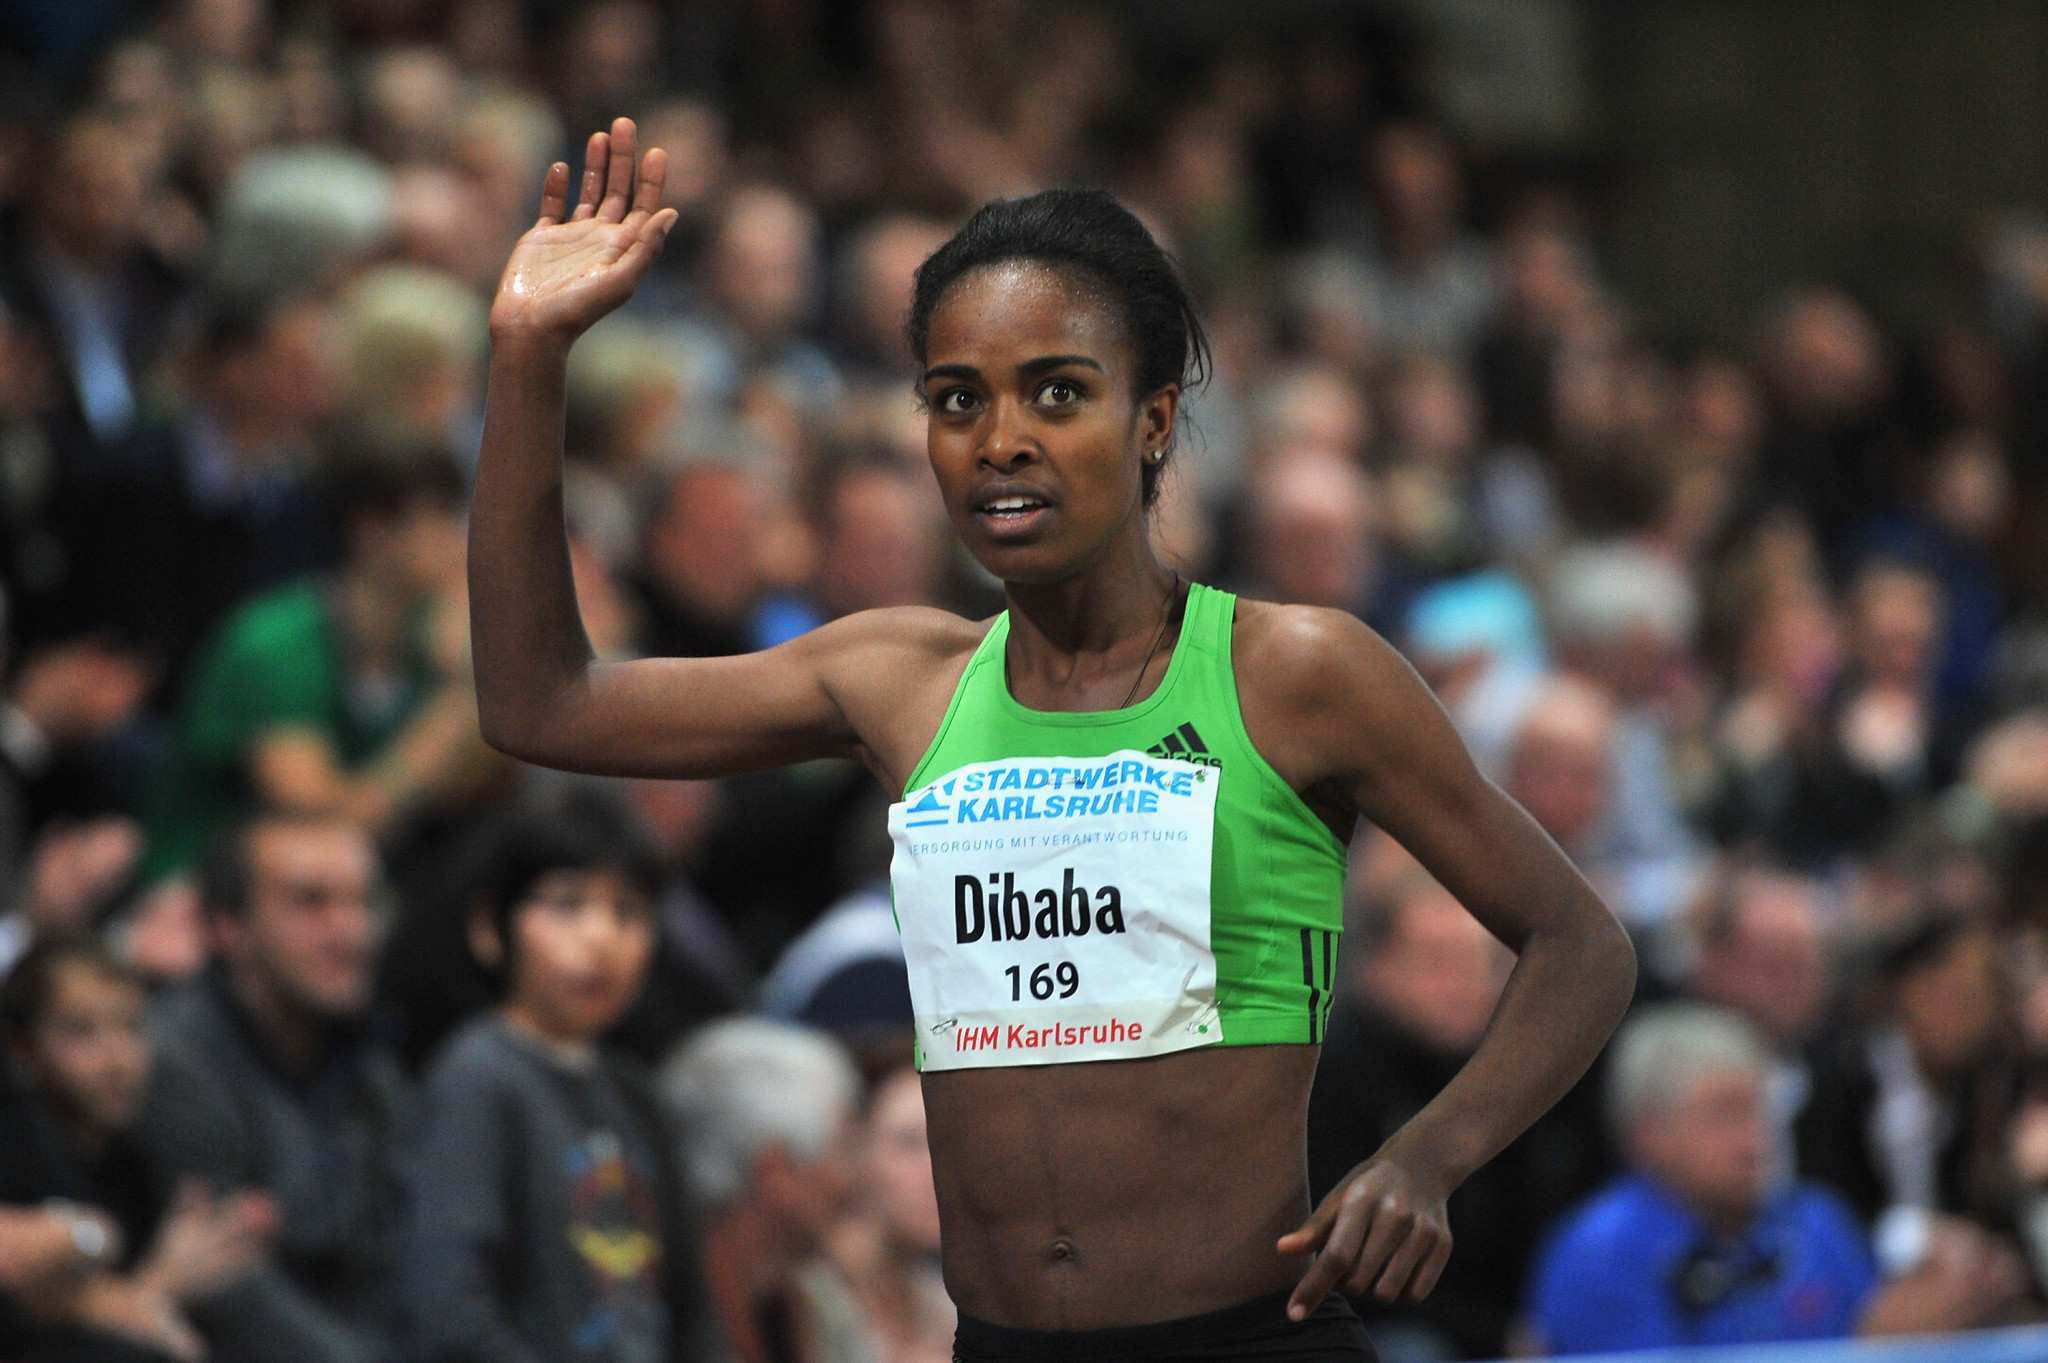 Dibaba to return to scene of record at IAAF Indoor Tour opener in Karlsruhe